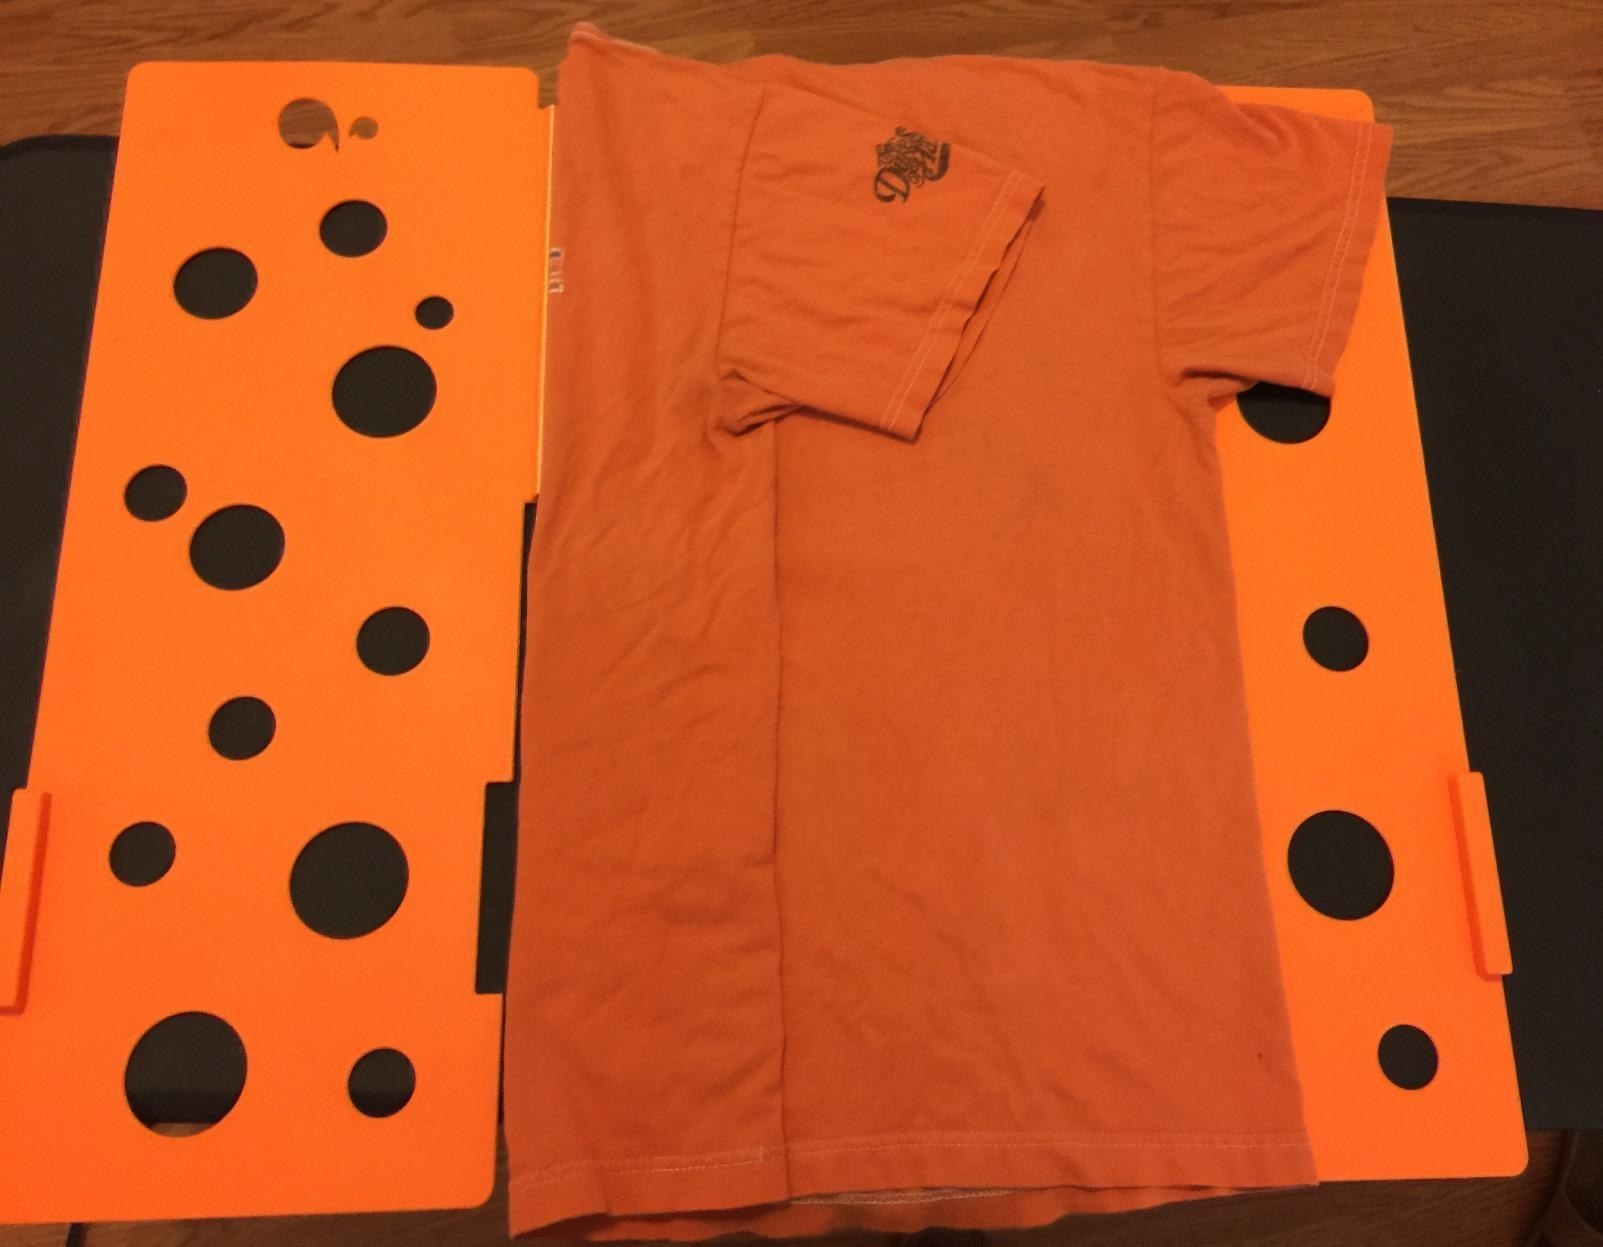 a review photo of an orange shirt being folded on the orange board